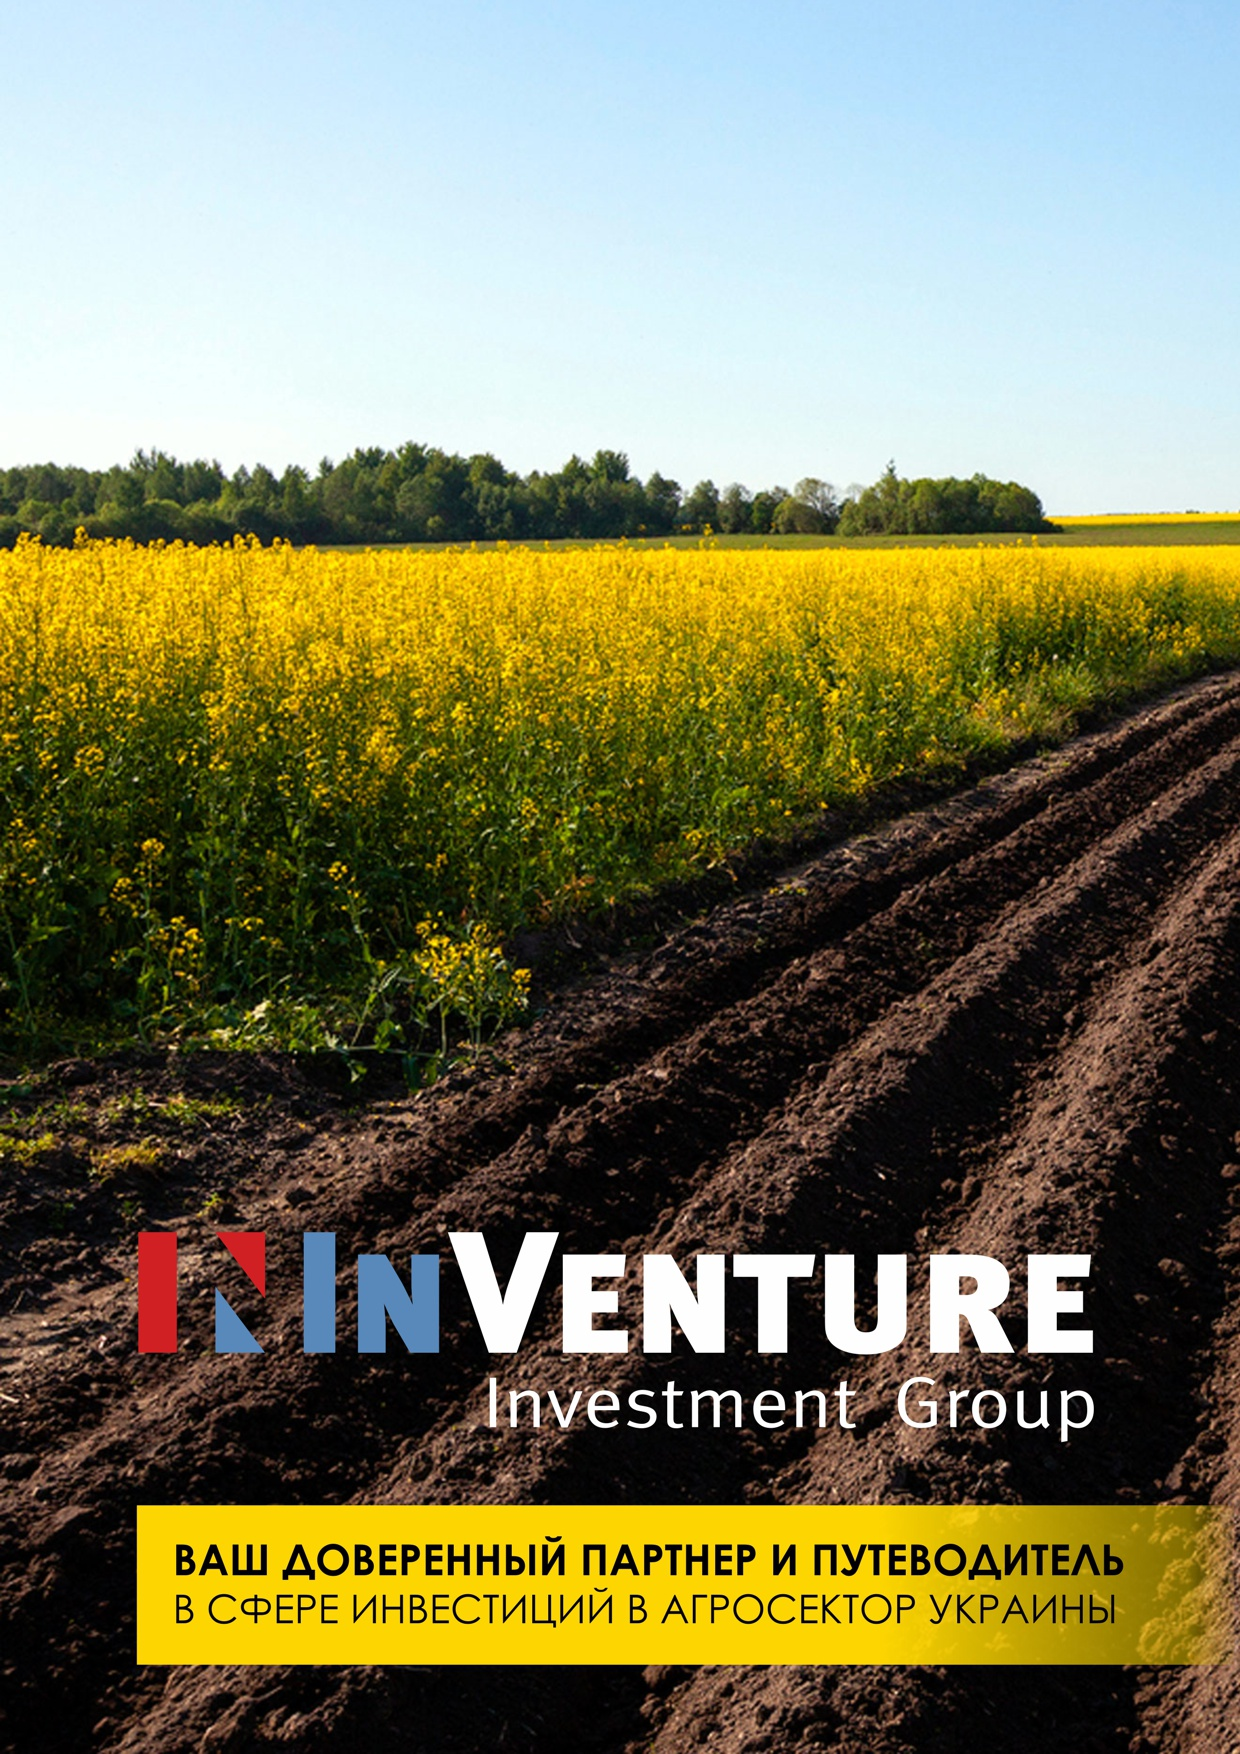 InVenture Agriculture Investment Services / Ukraine